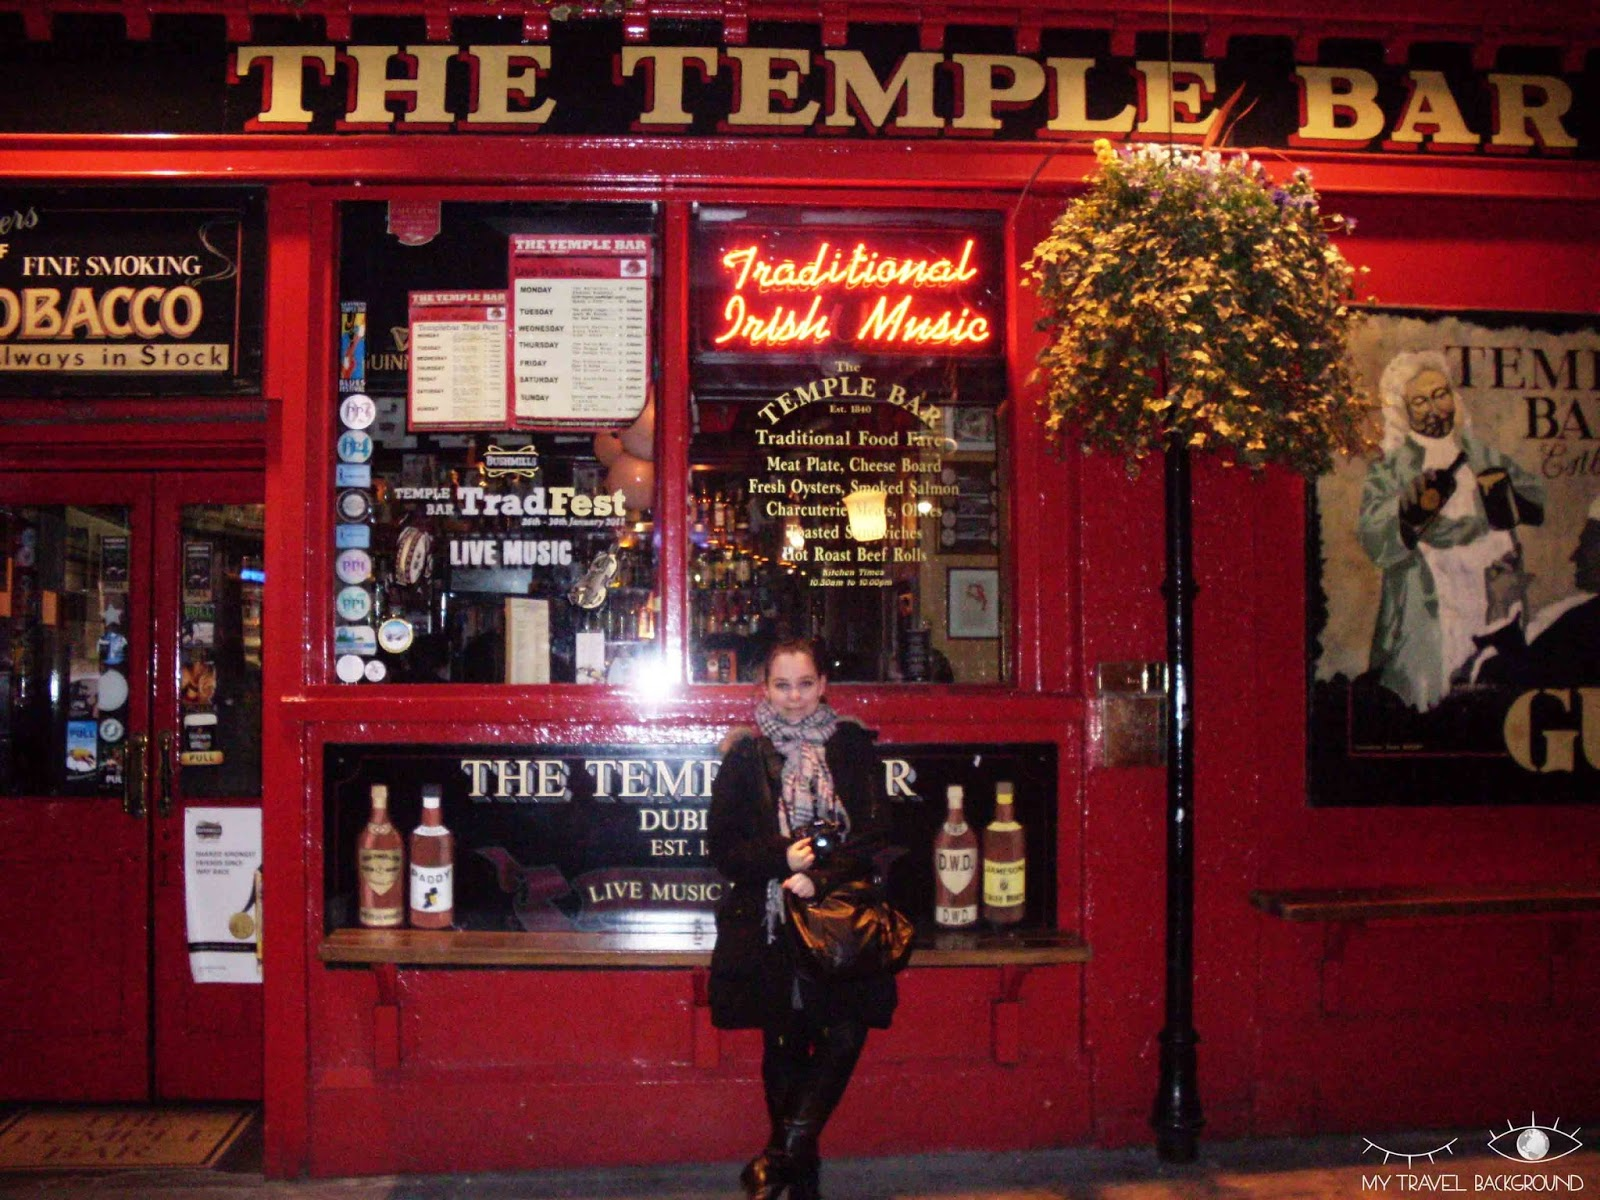 My Travel Background : Erasmus en Irlande, mon bilan 6 ans plus tard